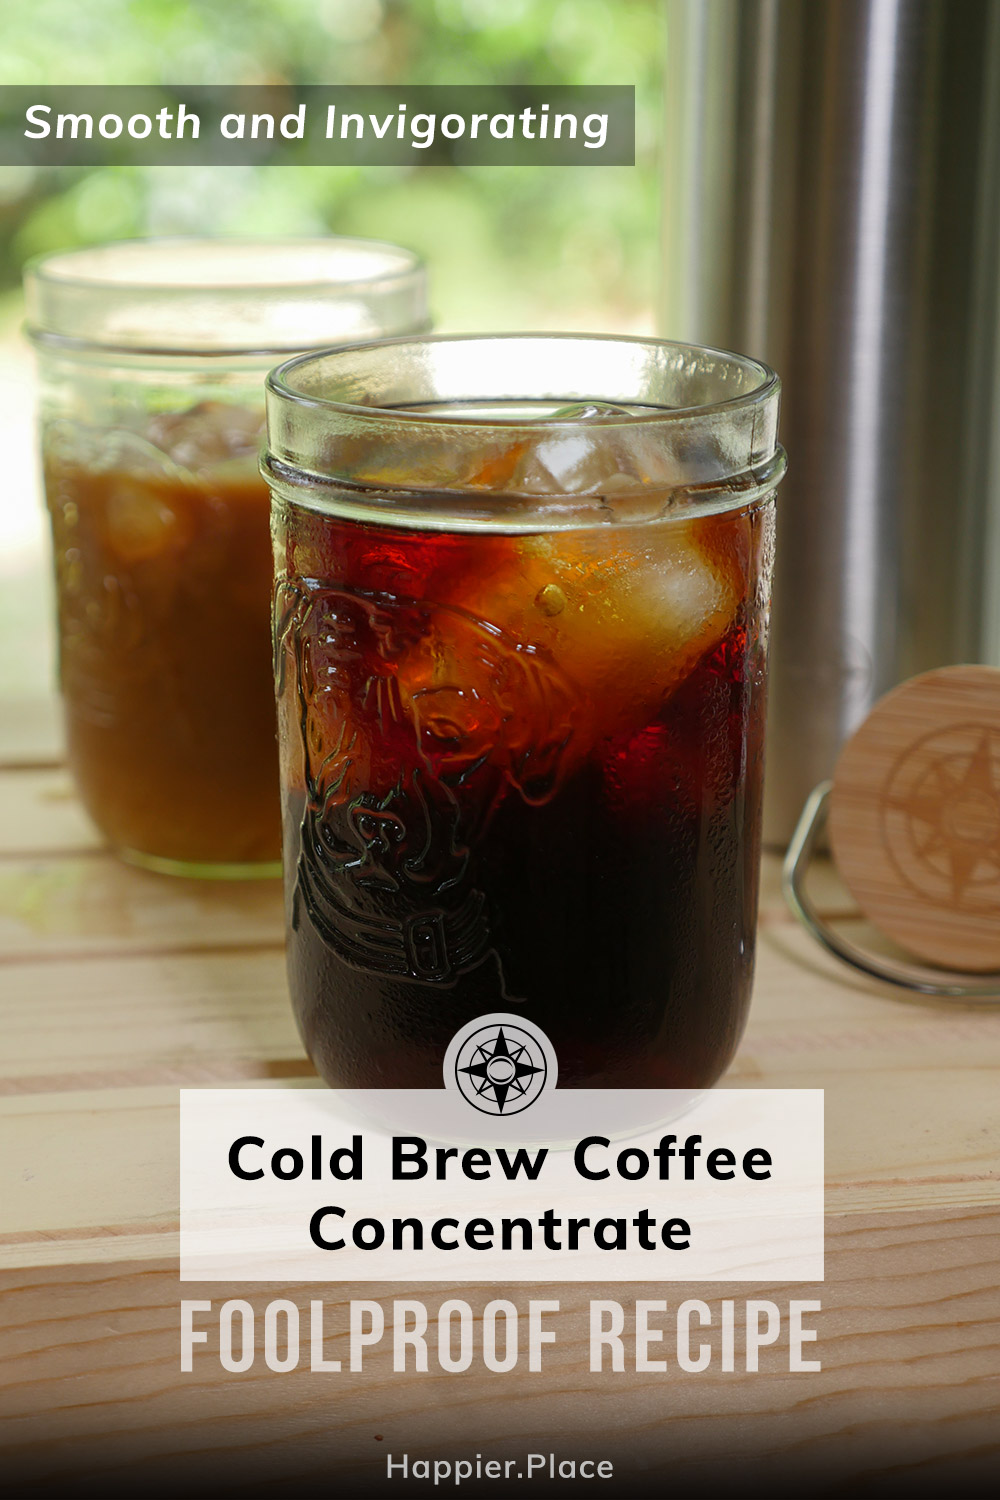 Smooth and Invigorating: Easy Cold Brew Coffee Concentrate Recipe